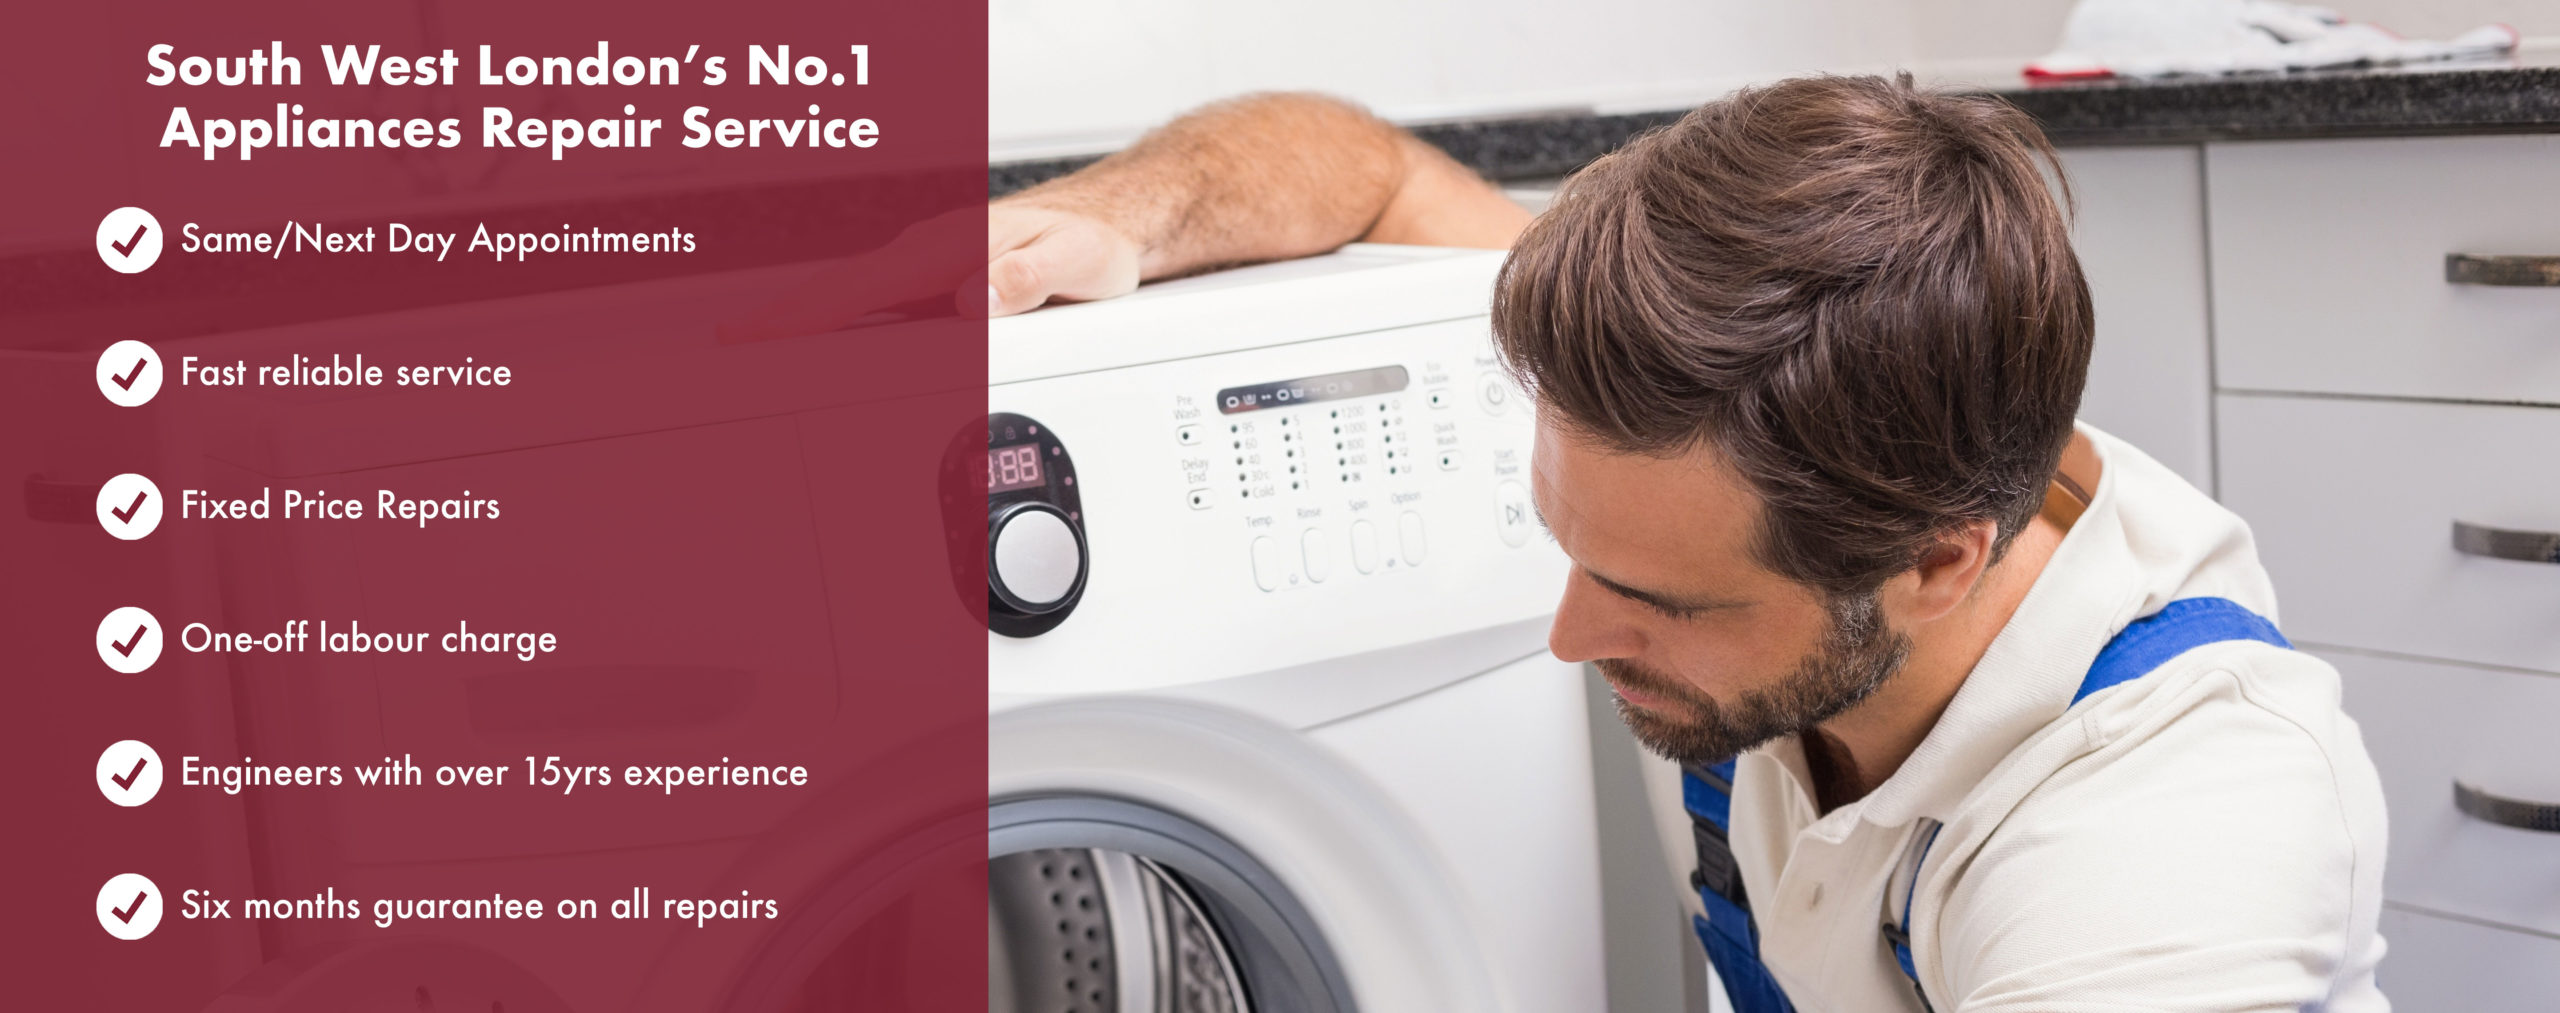 Appliance Repairs South West London